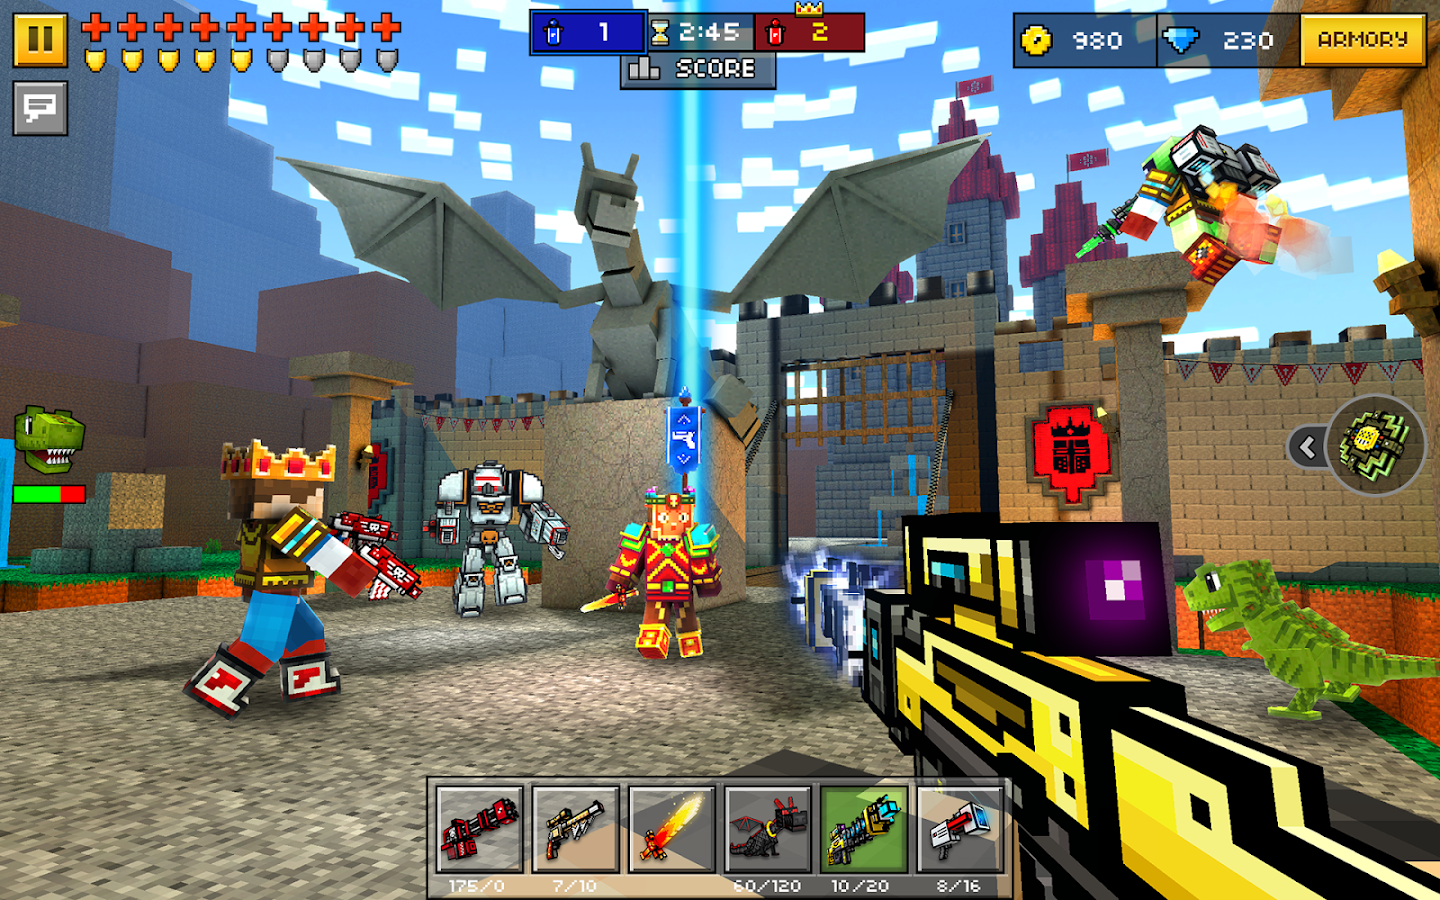 Pixel Gun 3D (Pocket Edition) Screenshot 11